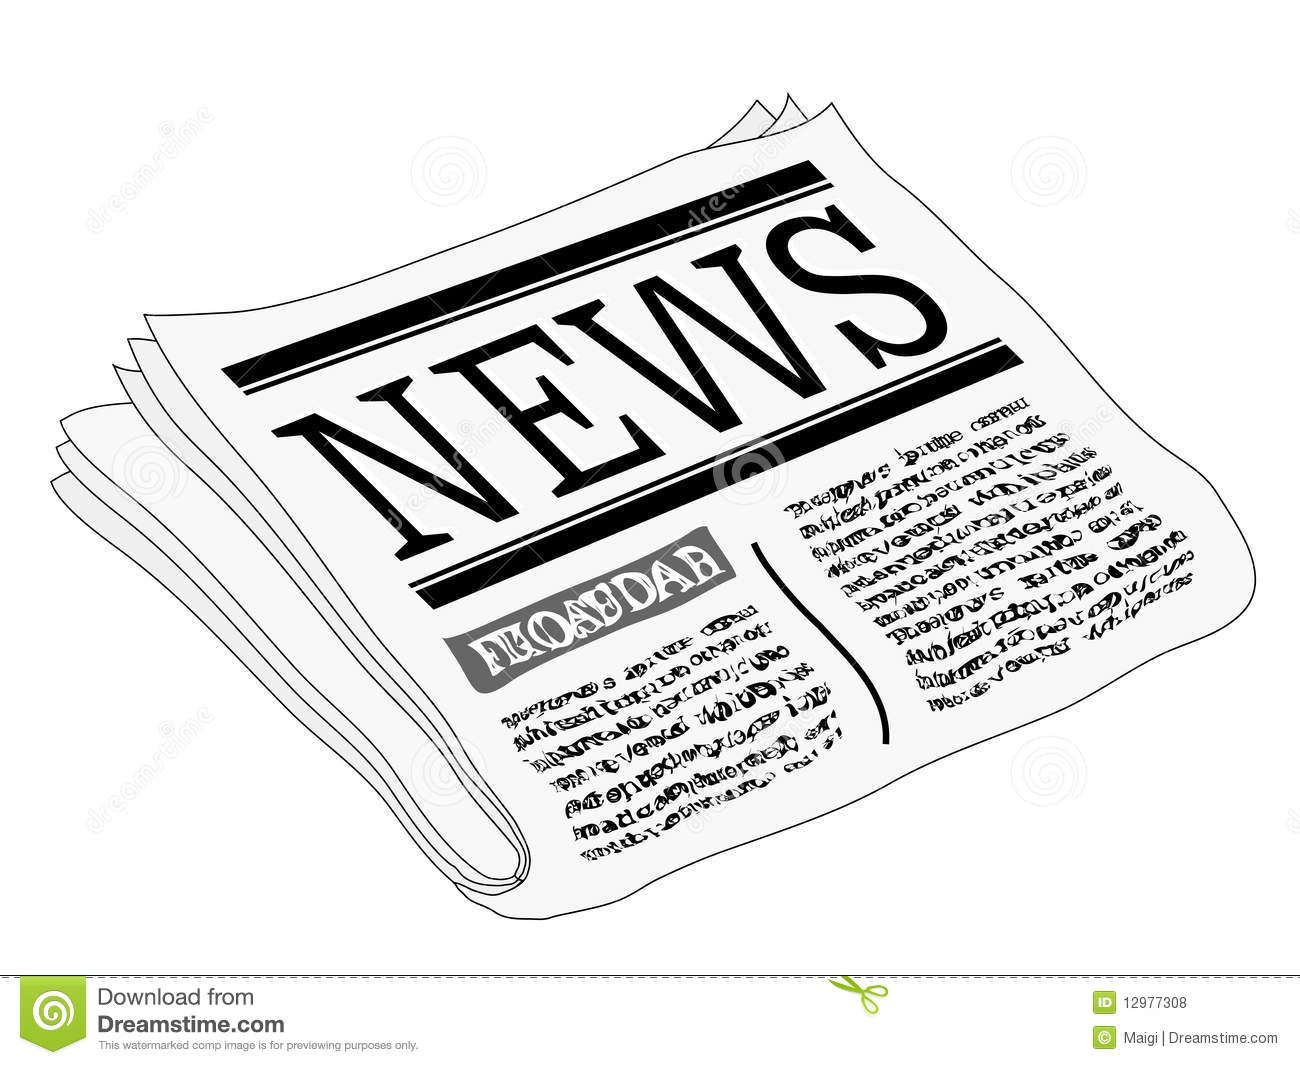 News clipart newspaper article. Clip art services panda